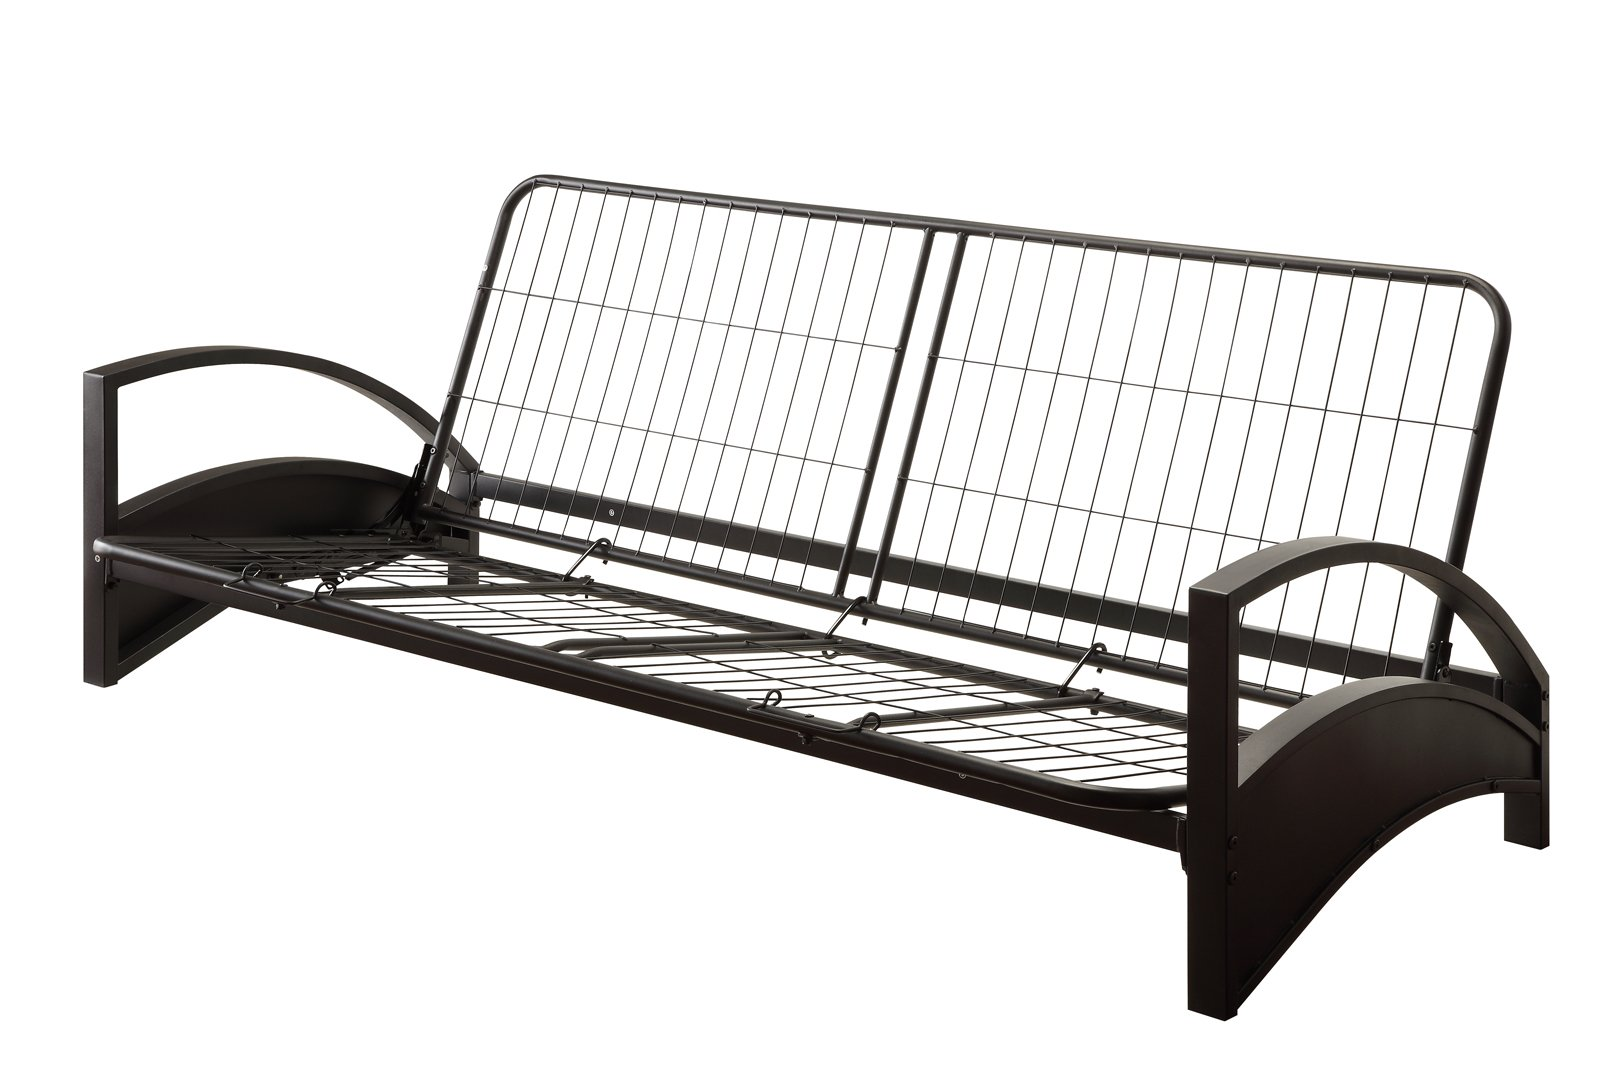 DHP Alessa Futon with Modern Metal Frame, Multifunctional Converts from Sofa to Bed, Full, Black by DHP